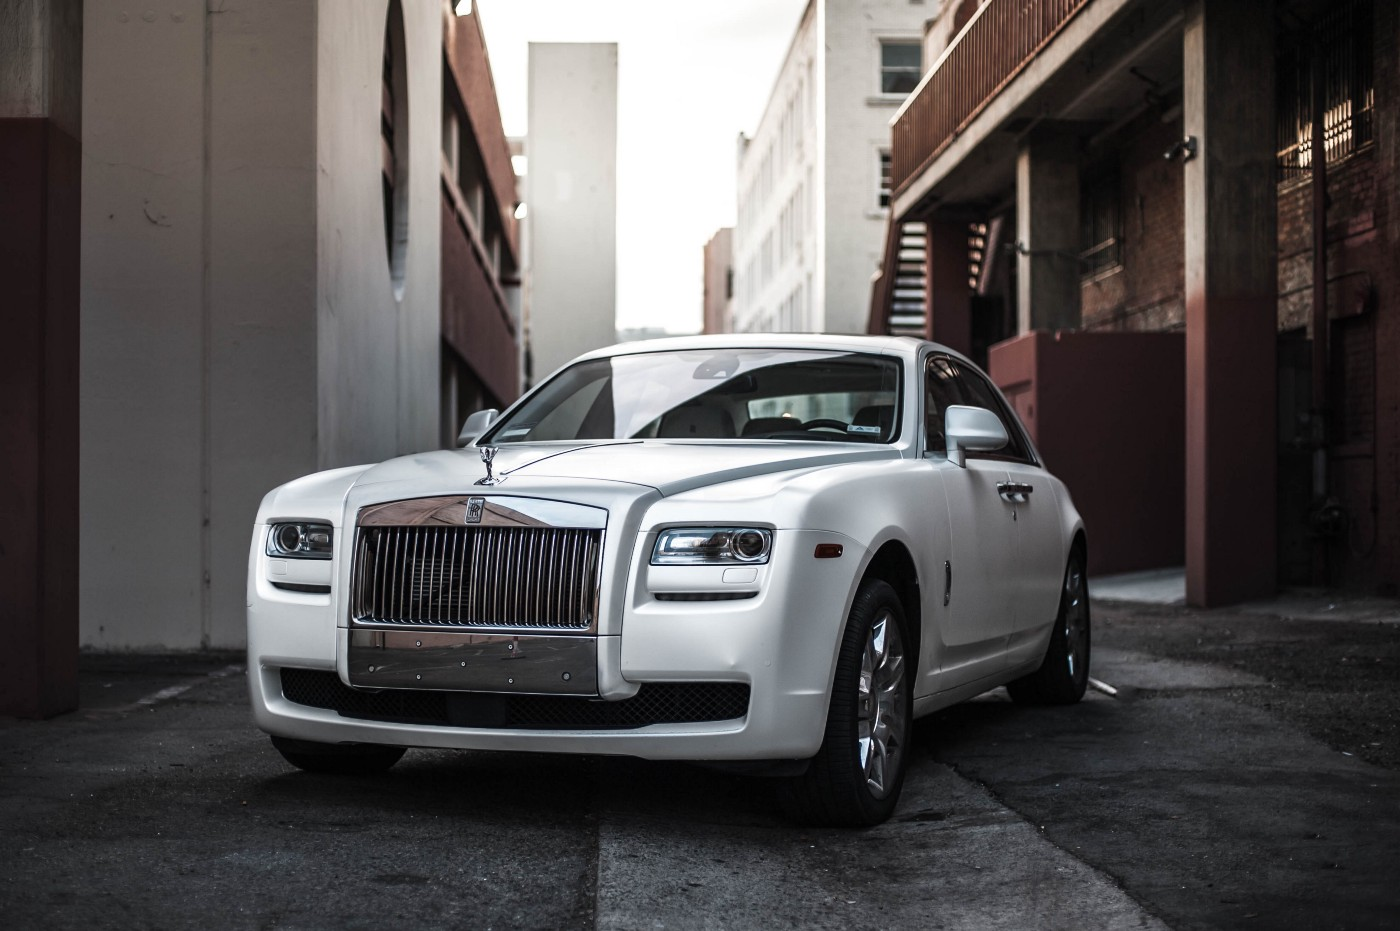 Rolls Royce: my most viewed Medium stories